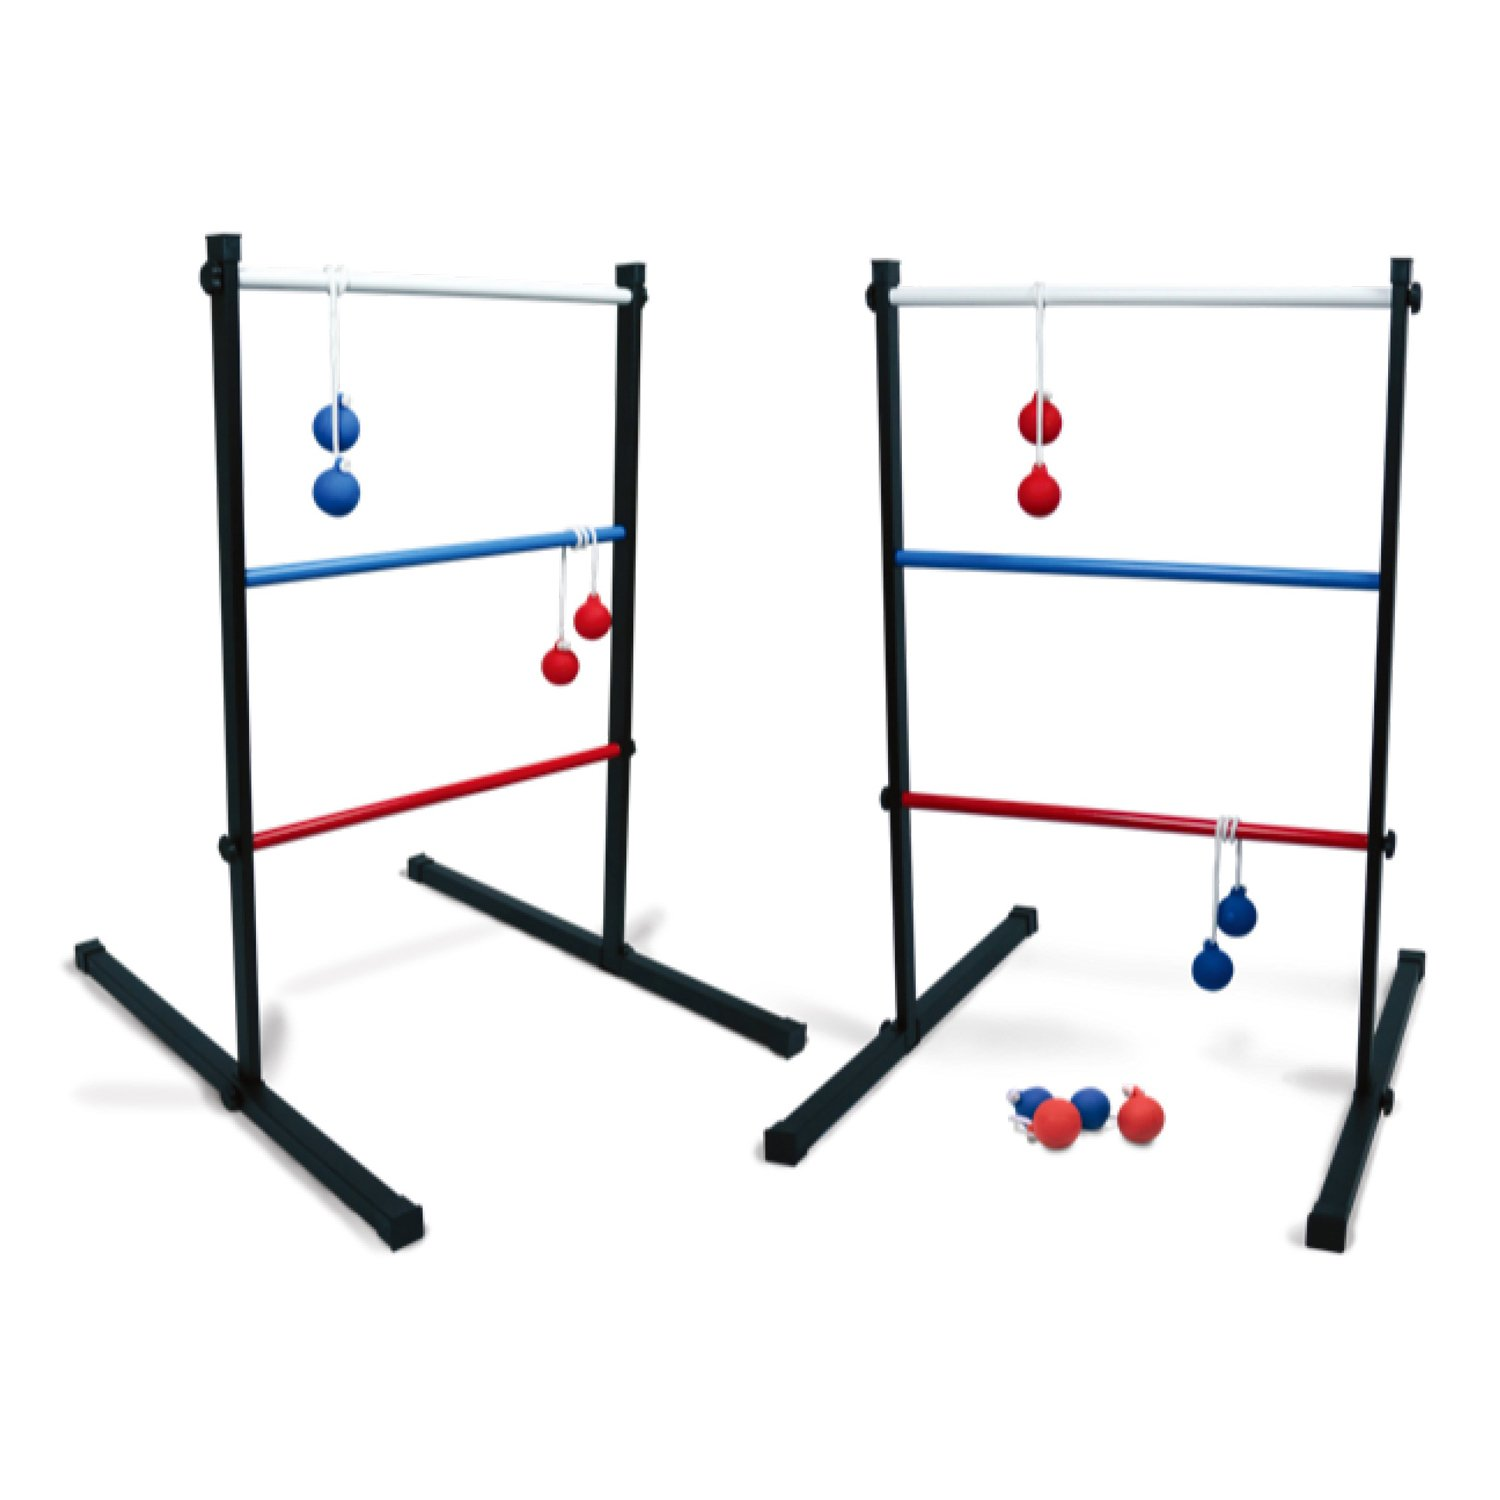 SPORT BEATS DELUXE Indoor/Outdoor Metal Ladder Ball Toss Game Set with 6 Rubber Bolos And Carrying Case,Great For Family Fun by SPORT BEATS